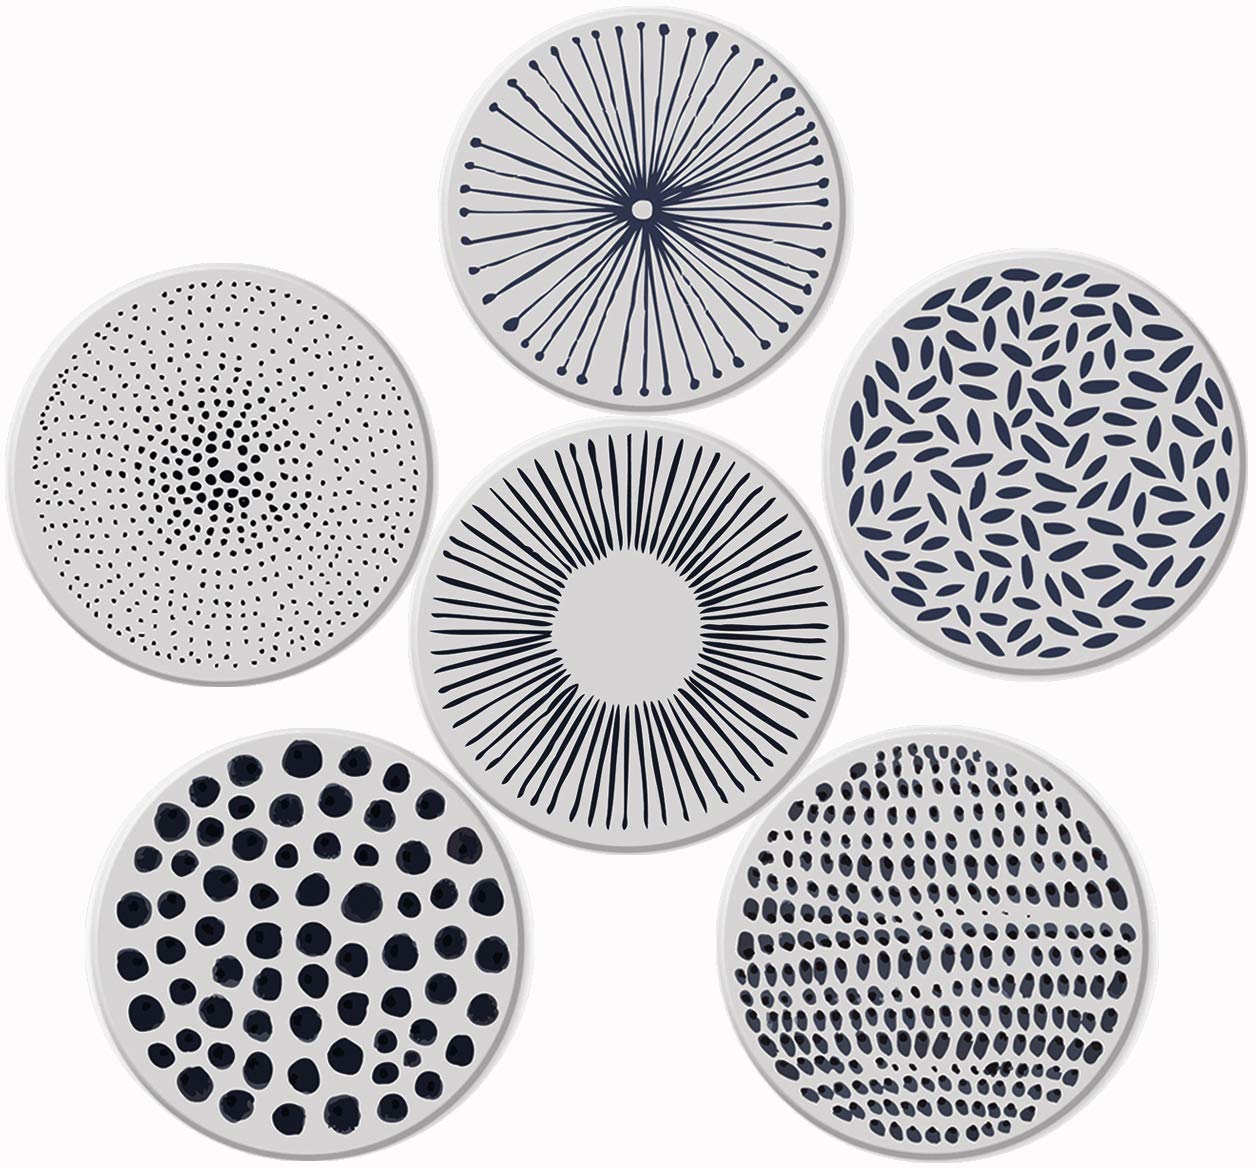 Pandoza Absorbent Coasters For Drinks - Grey Lines On LARGE Ceramic Stone With Cork Backing, Drink spills Thirsty Coaster Set of 6 No Holder, OVERSIZE BETTER Protects Furniture From Damage by Pandoza